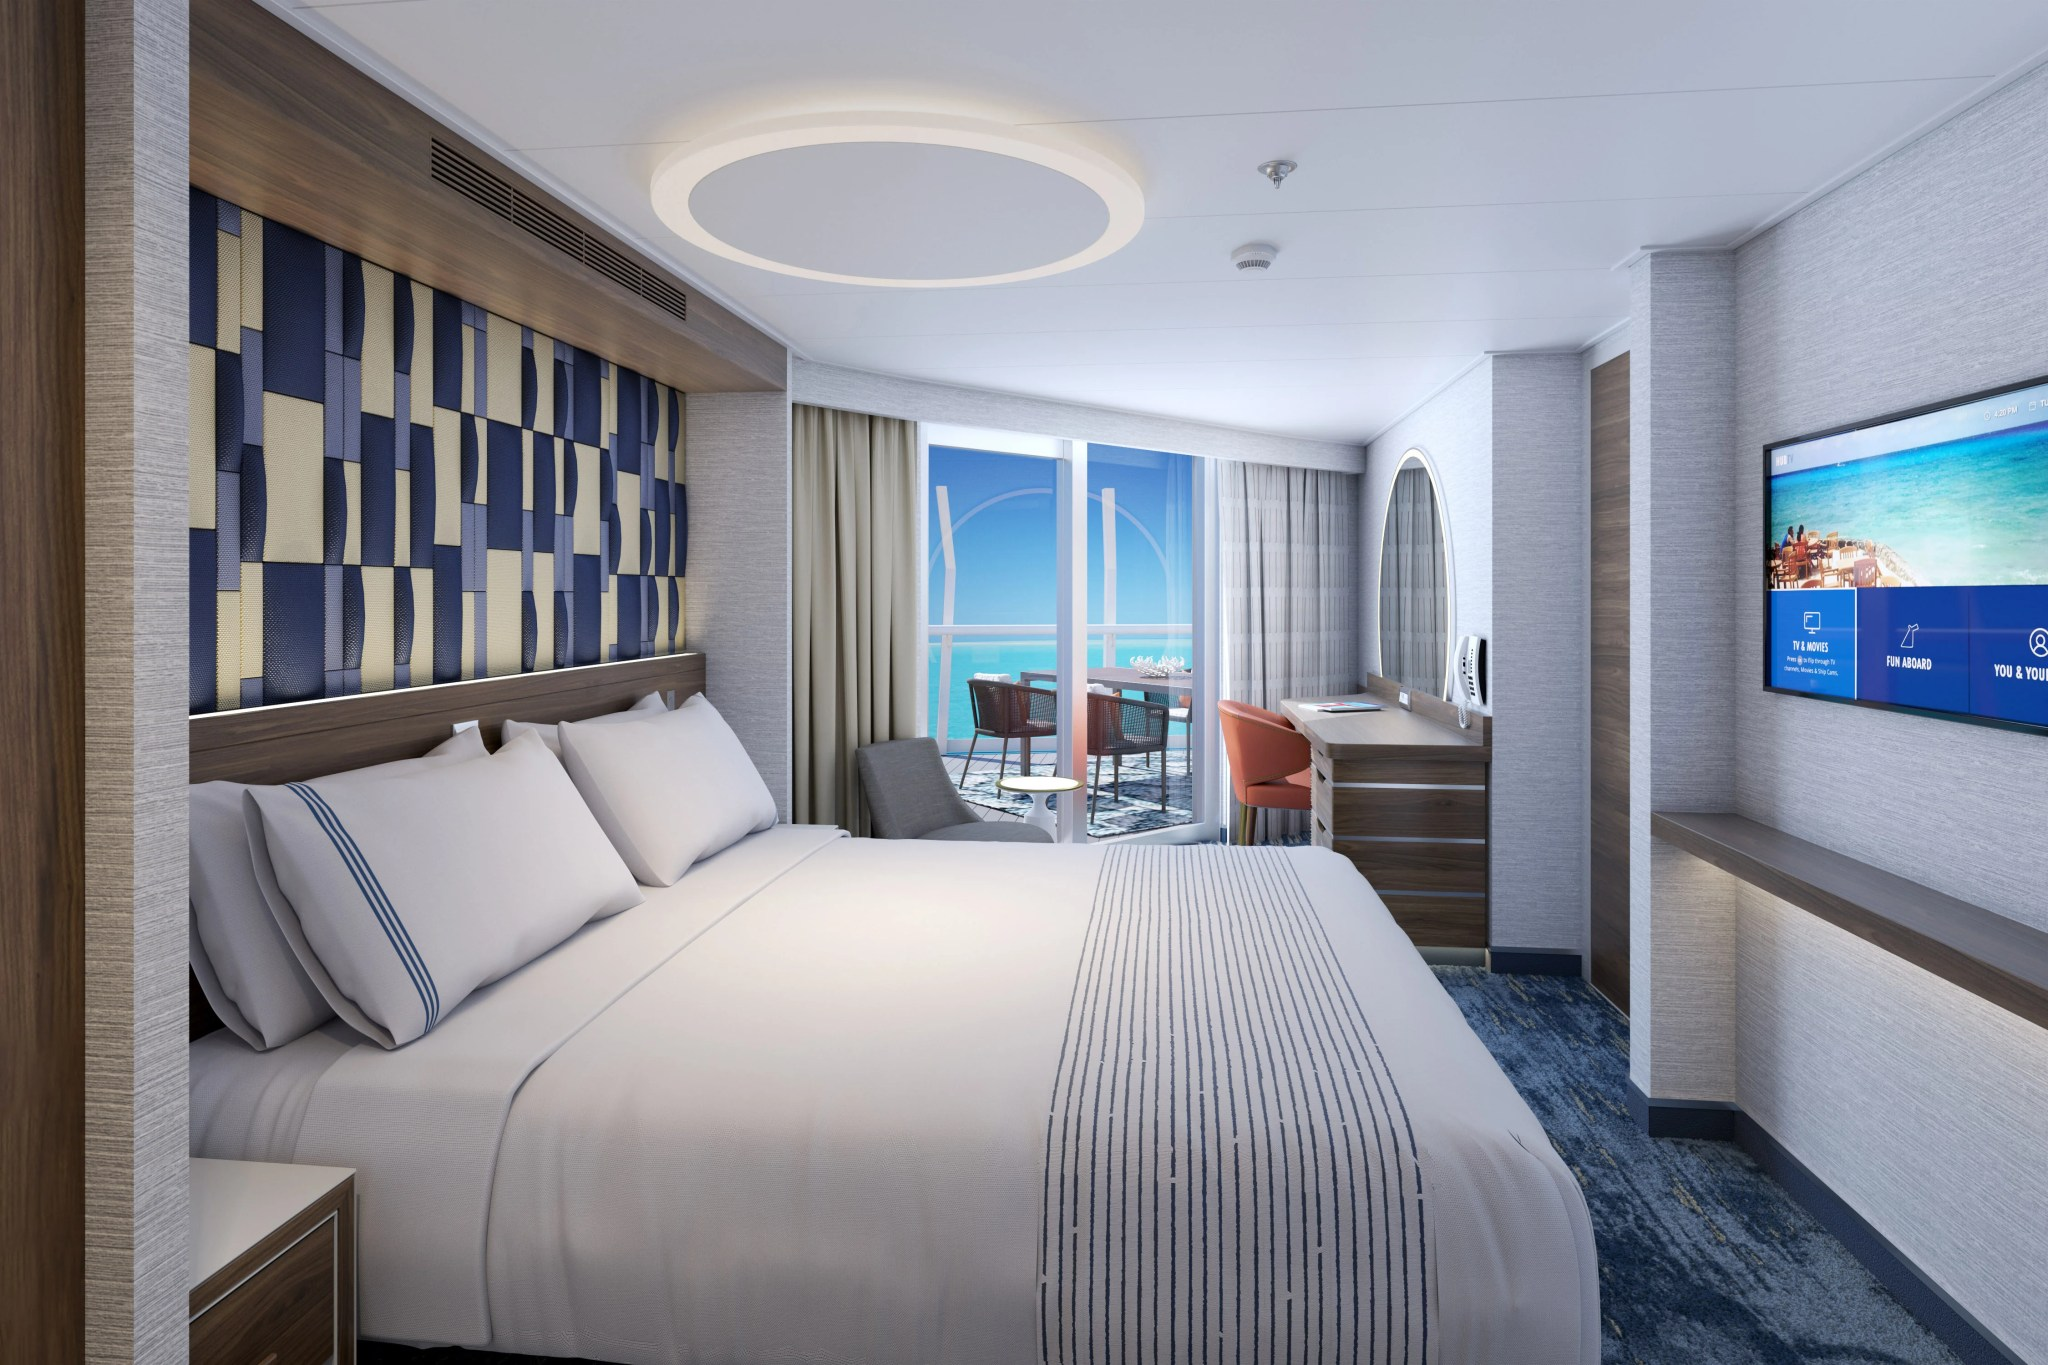 carnival splendor balcony room reviews Carnival Is Going Big With Its Largest Suites Ever On New Ship